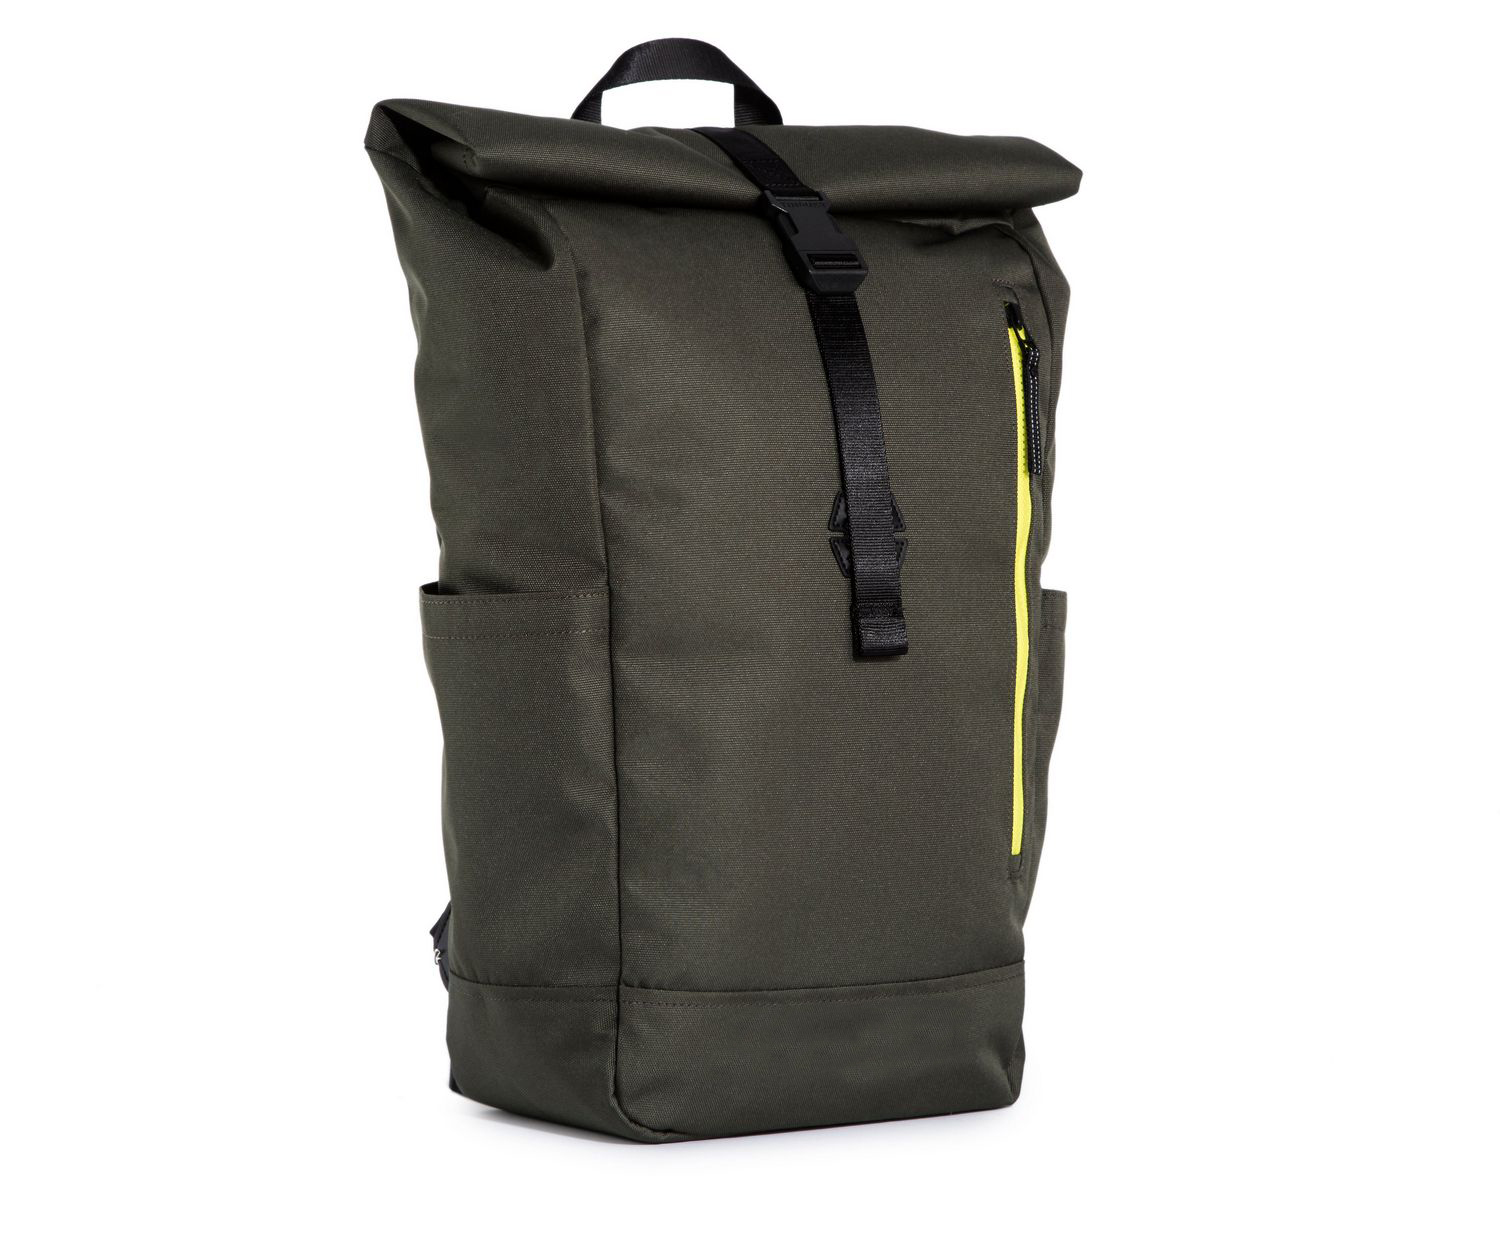 Polyester Canvas Fabric 15 inch Laptop Bag Waterproof Roll Top Backpack